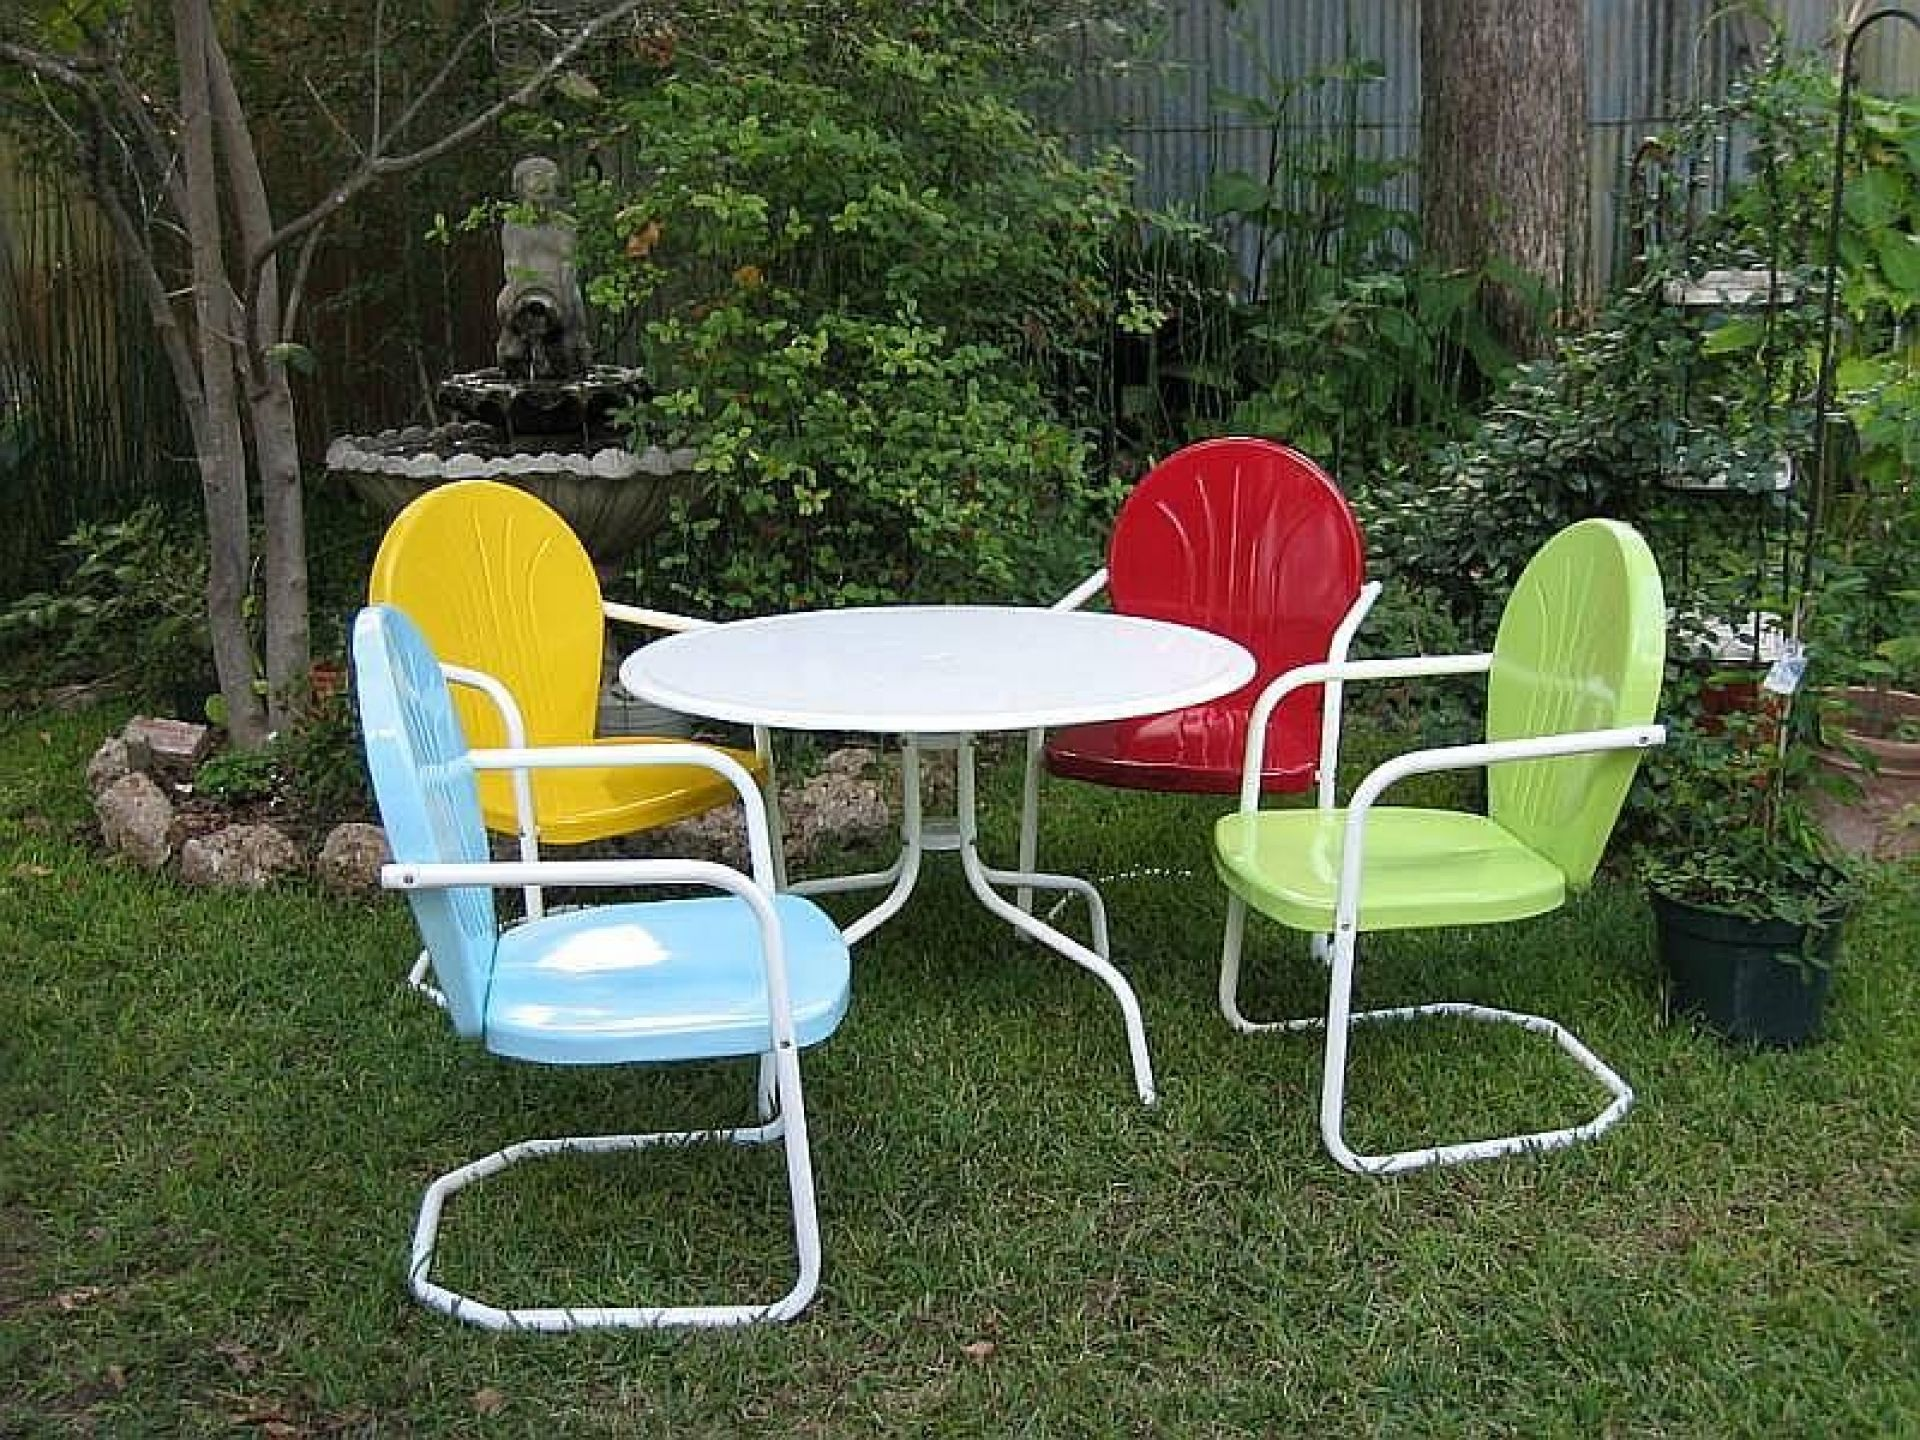 Elegant Representation Of Enjoy Every Minute Of Your Leisure Time With Best Lawn  Chair Design Amazing Pictures